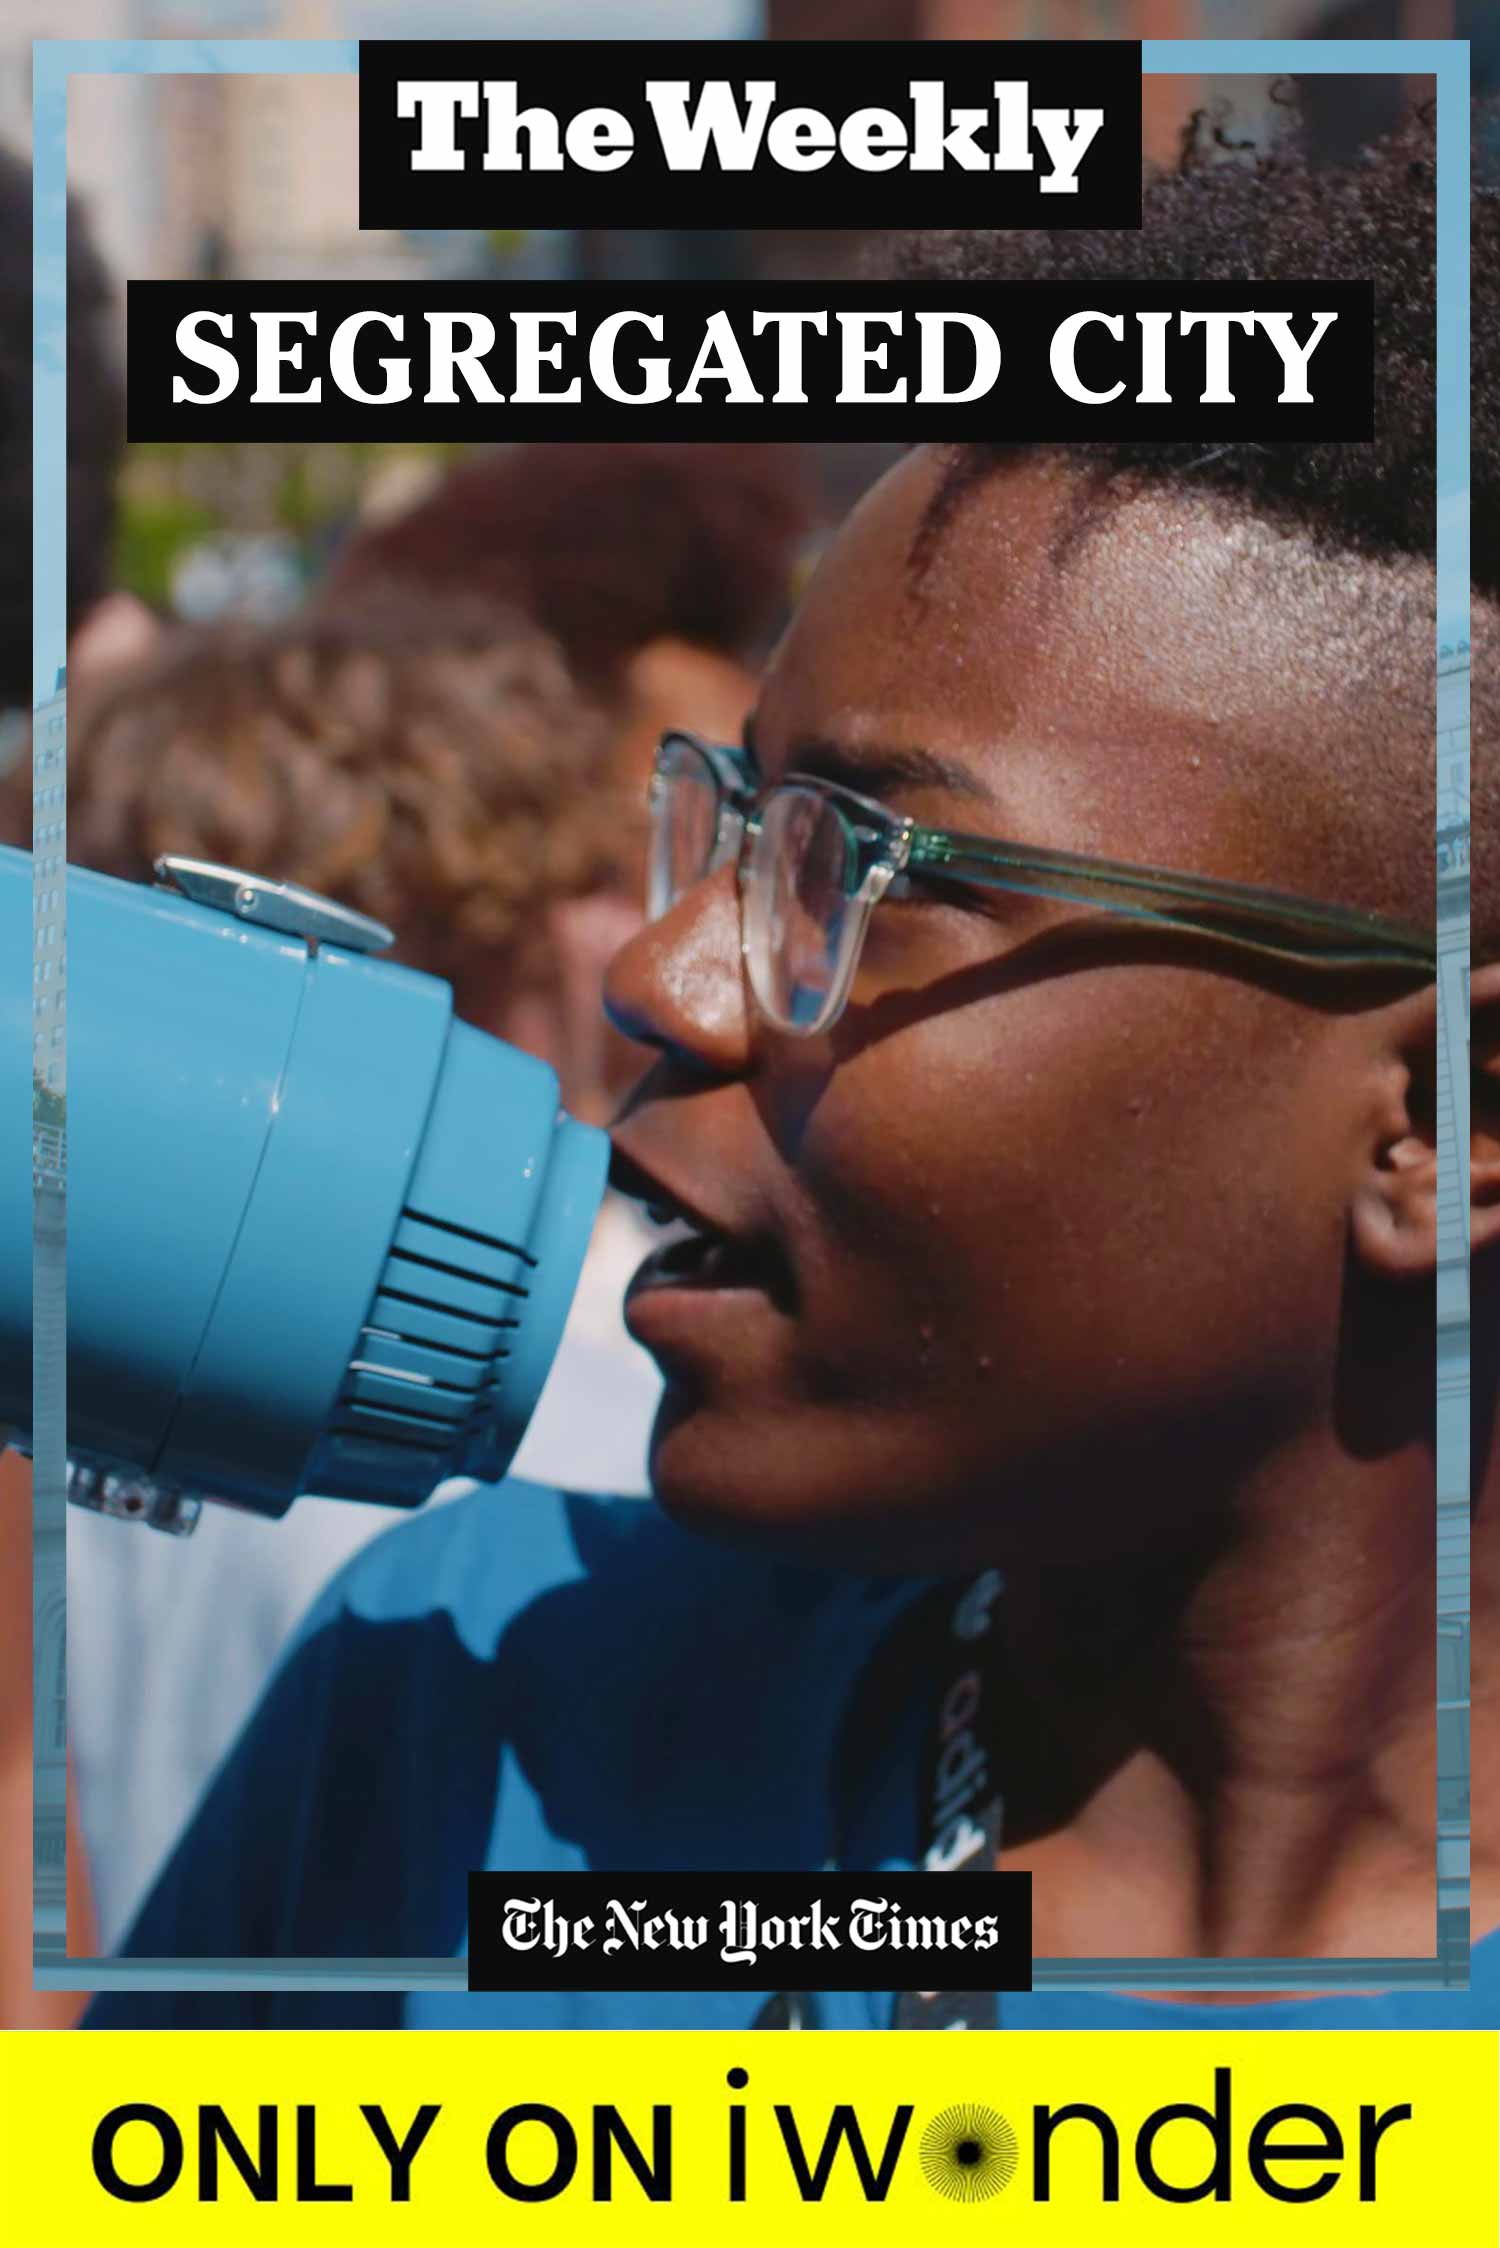 The Weekly: Segregated City